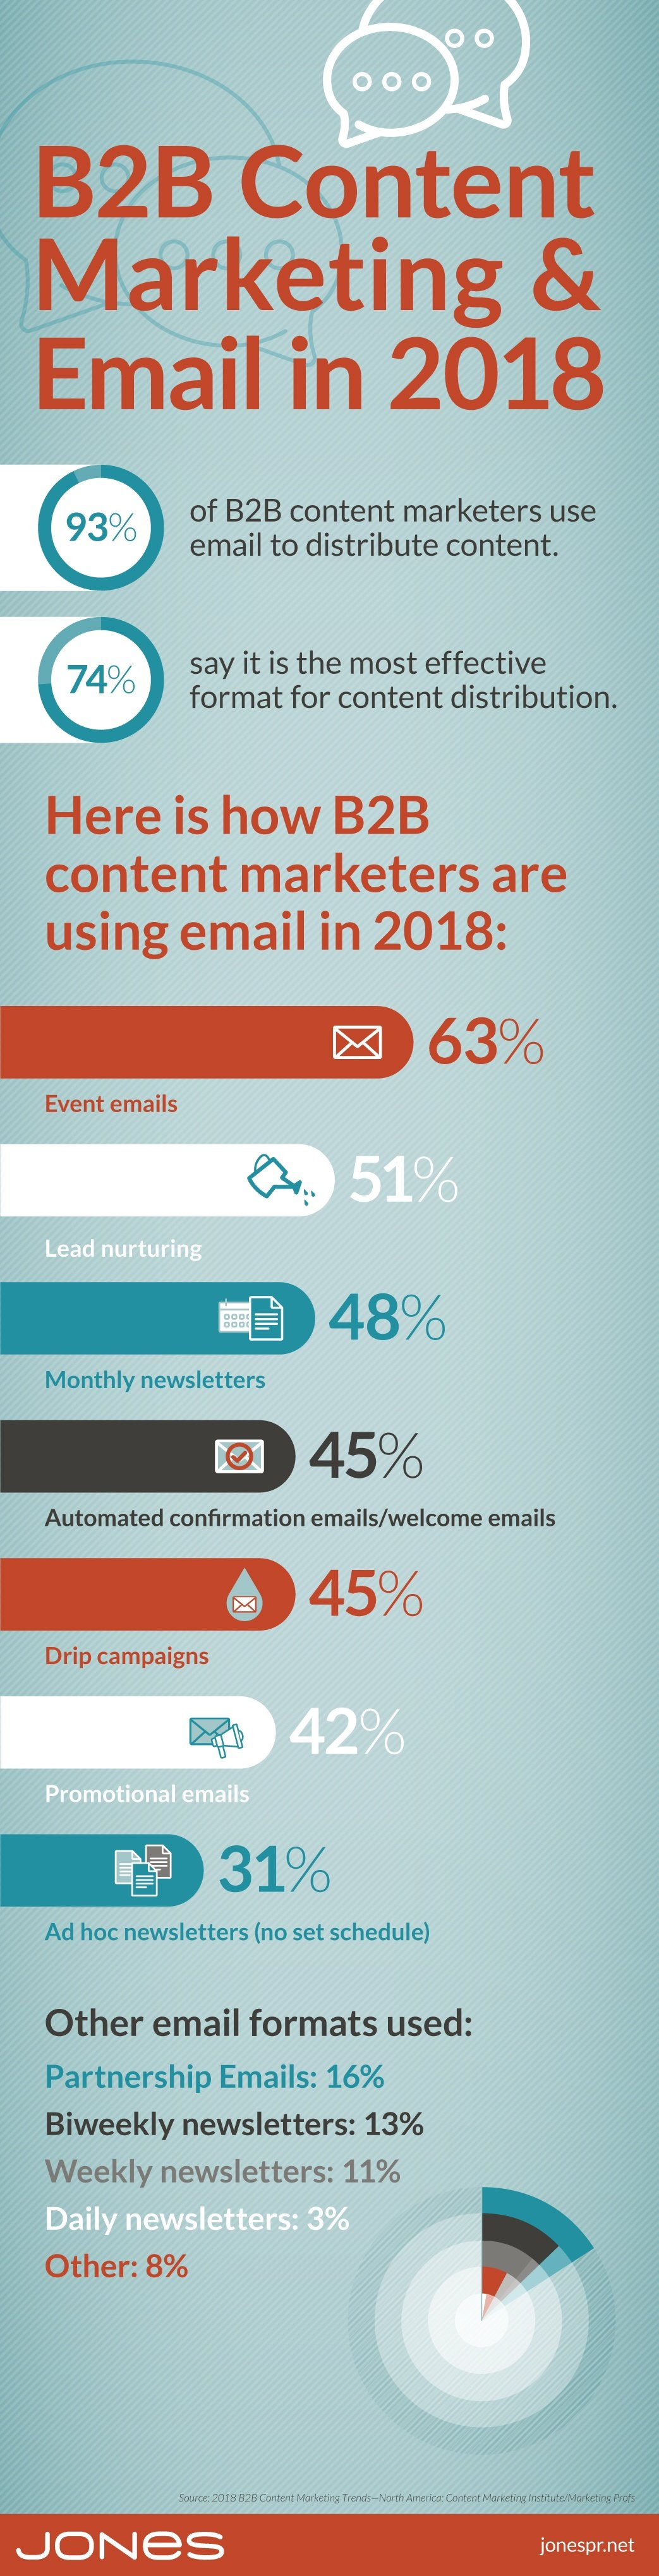 jones-infographic-B2B-content-email